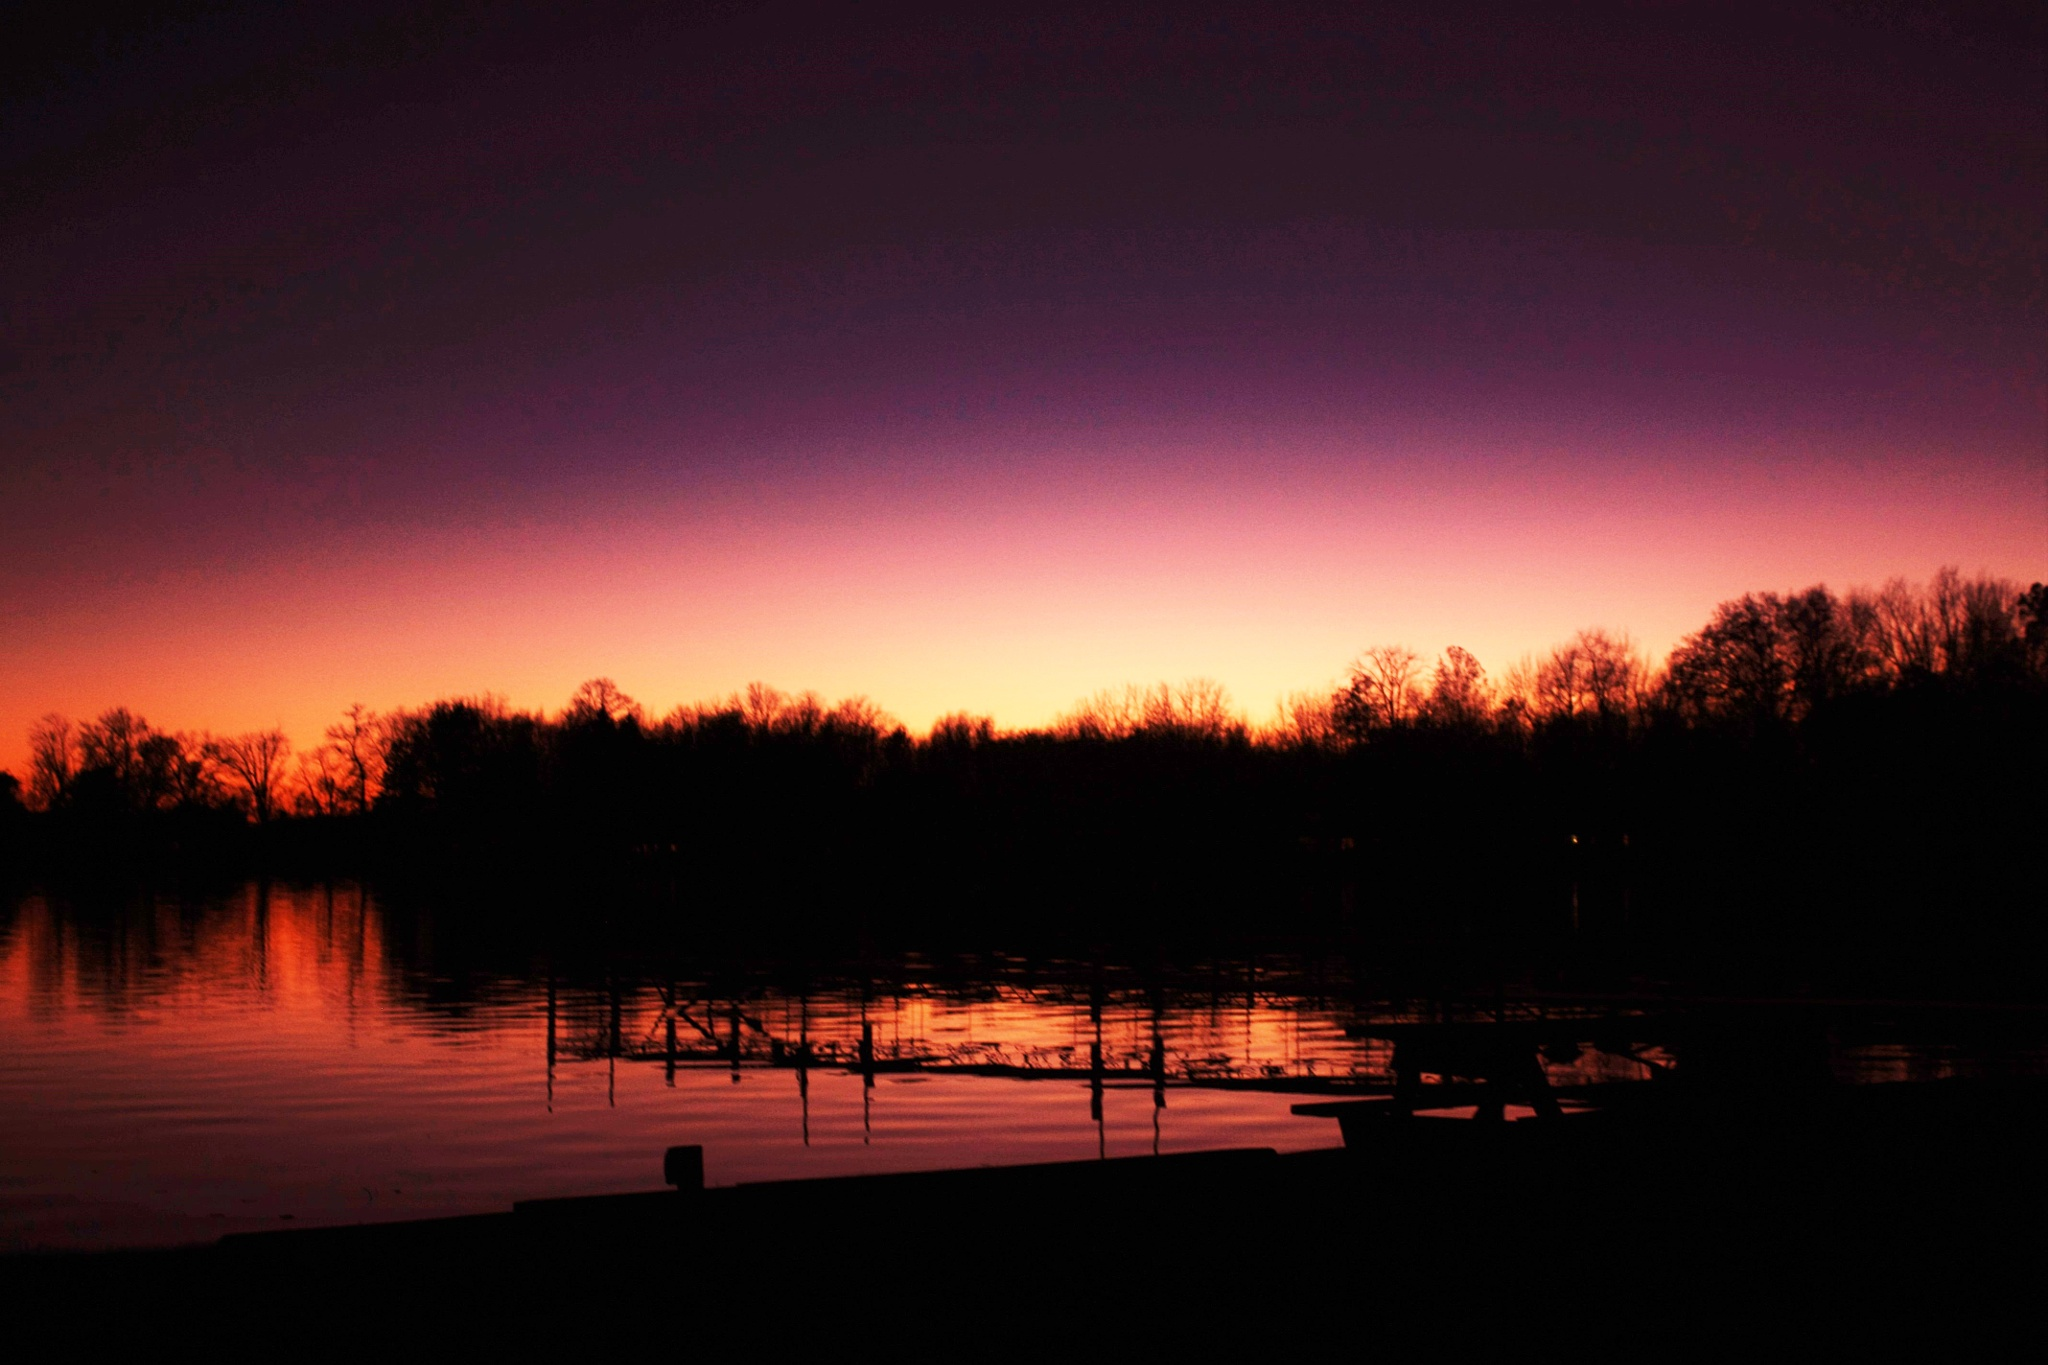 night on the Lake 2 by cindy.martin.7503